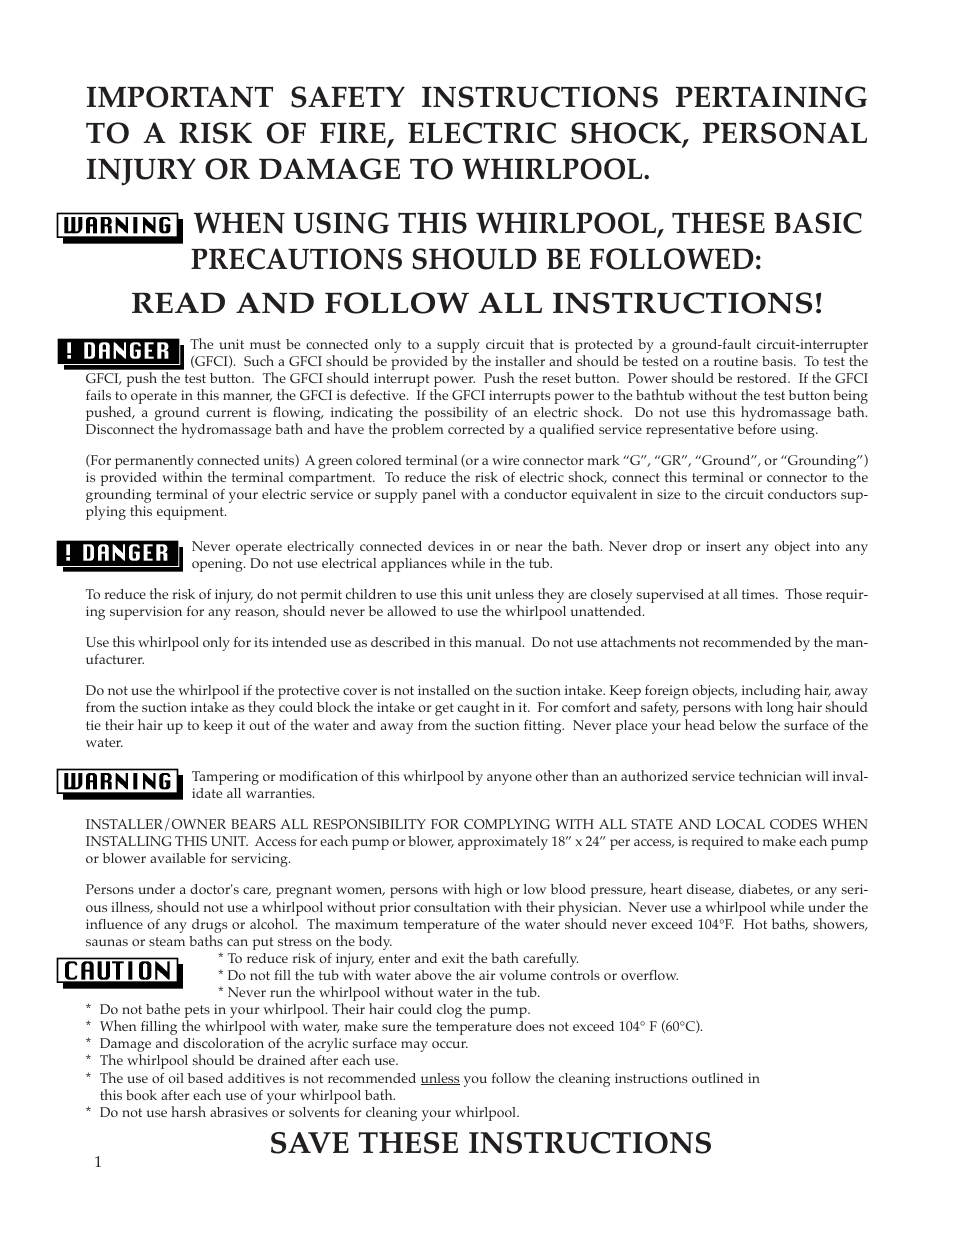 Save These Instructions Whirlpool Maax Pearl Hot Tub